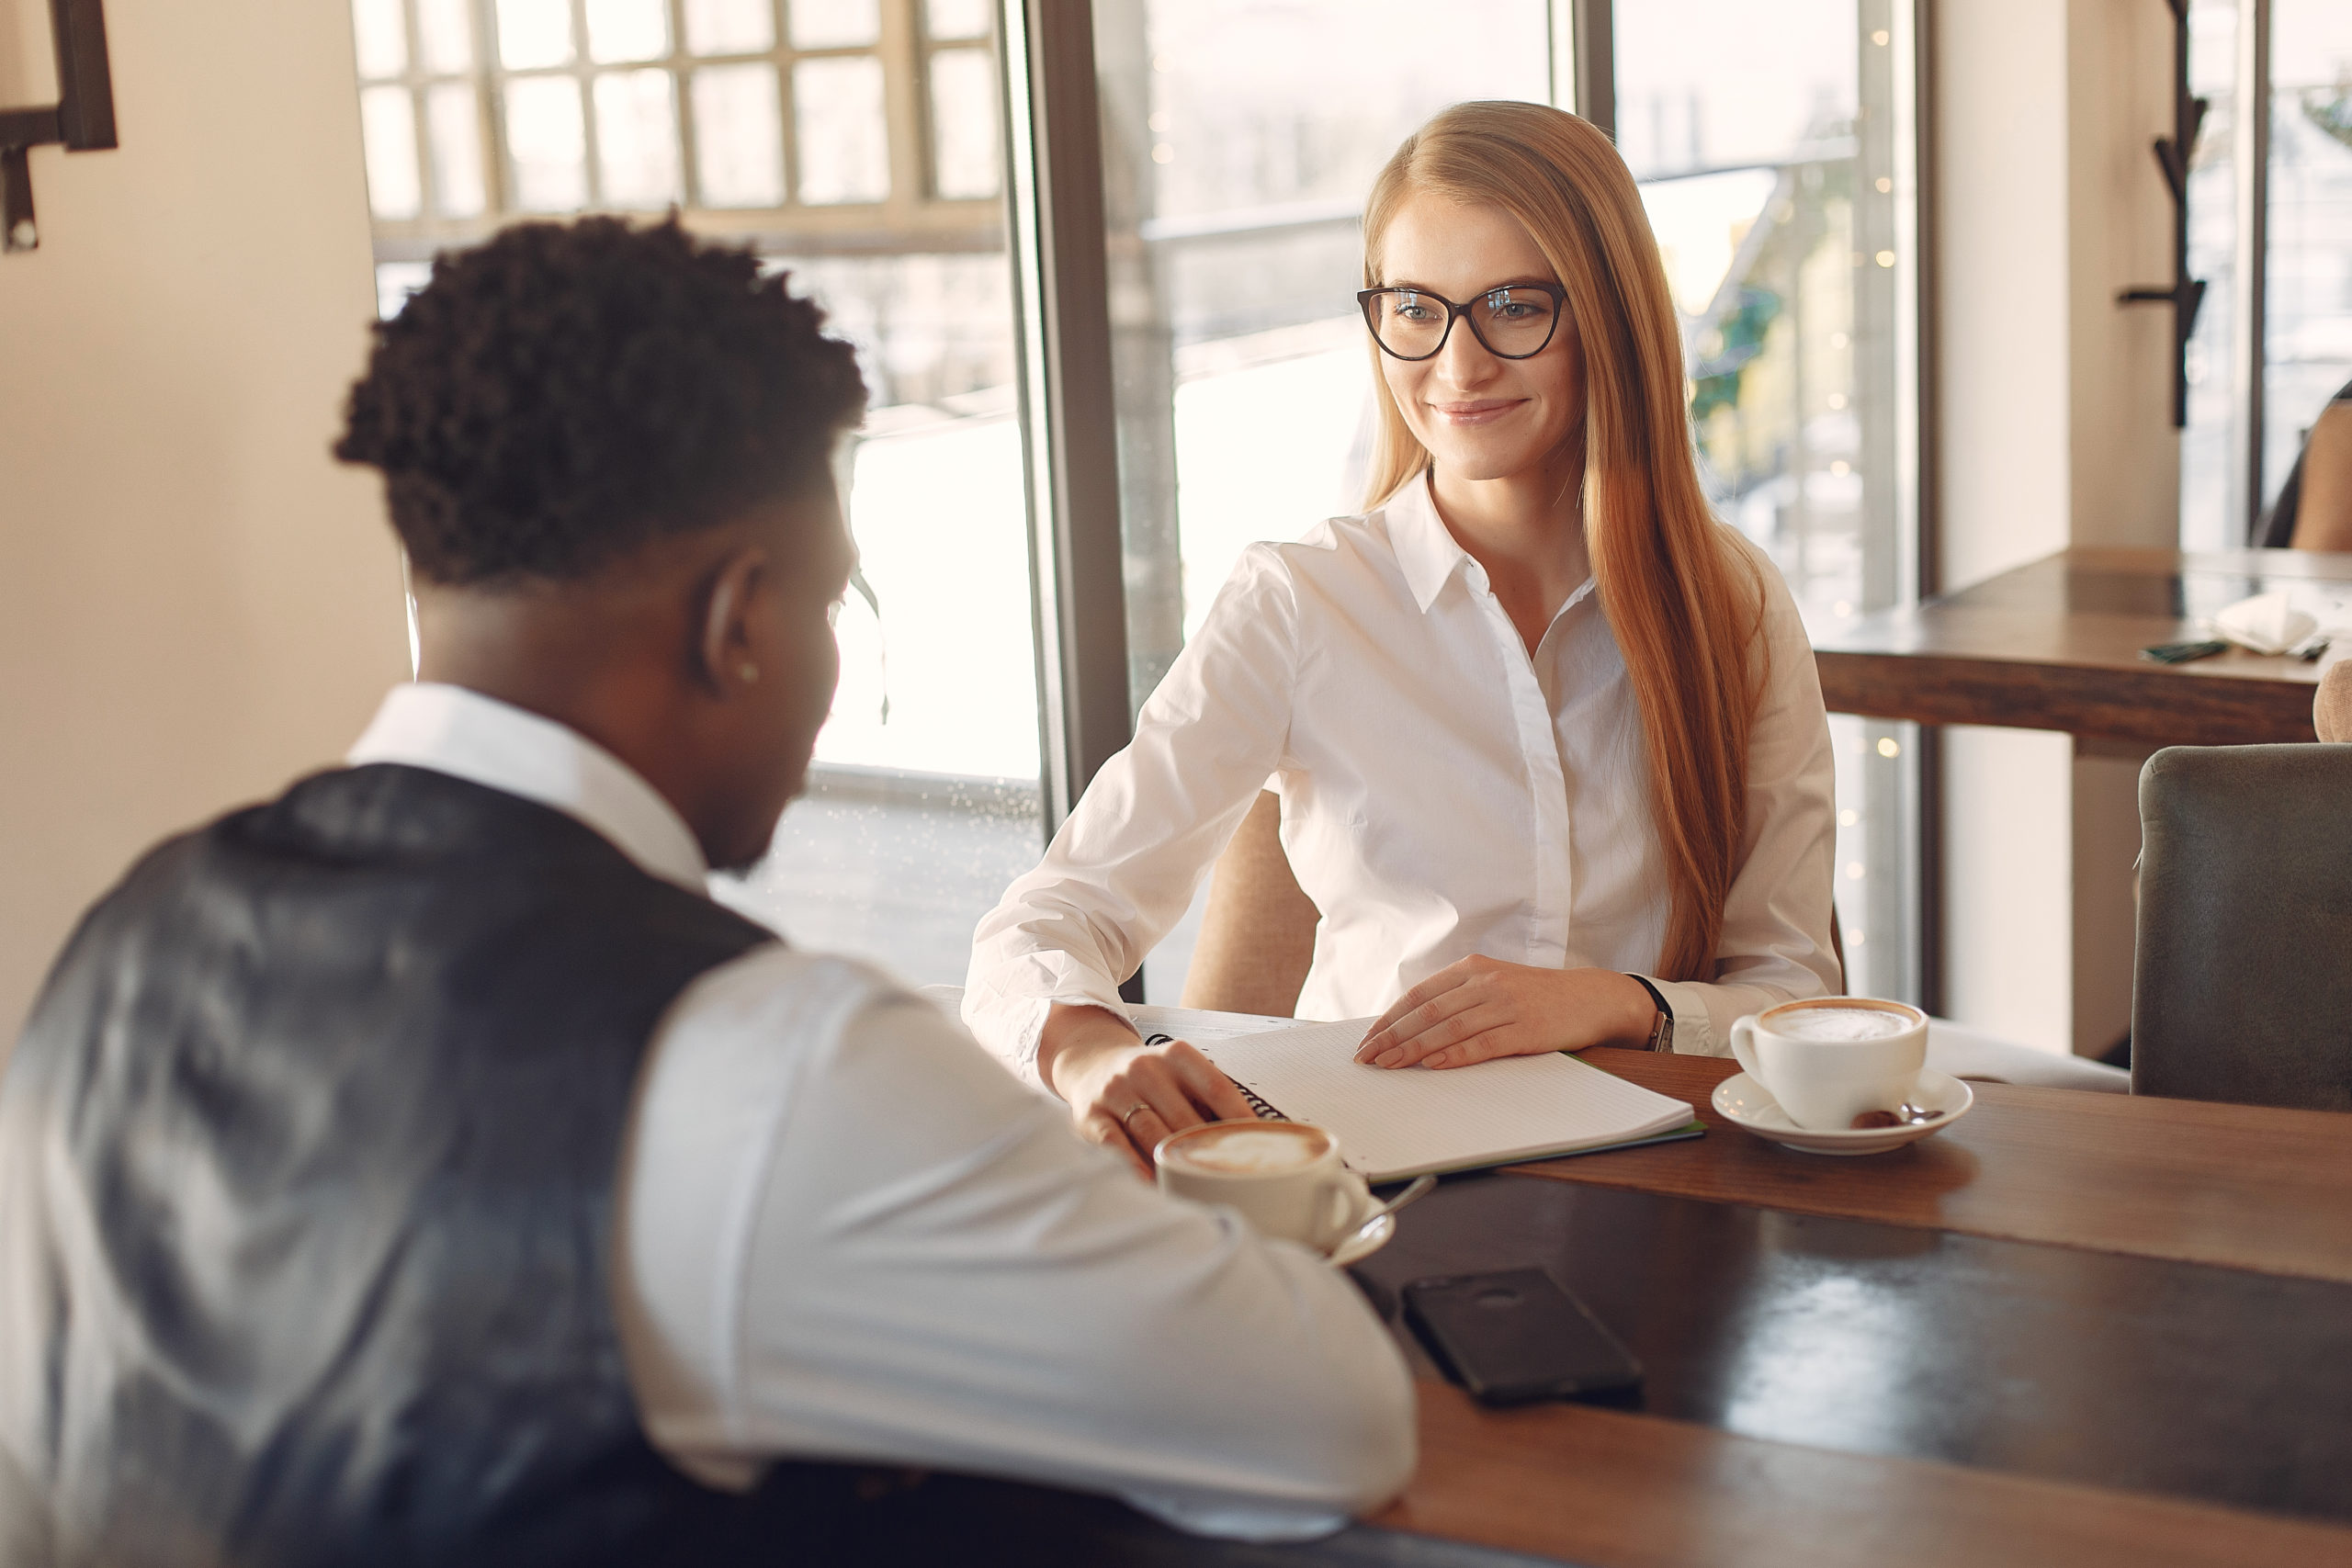 Insights to Consider for Second Interviews and Narrowing Down Candidates